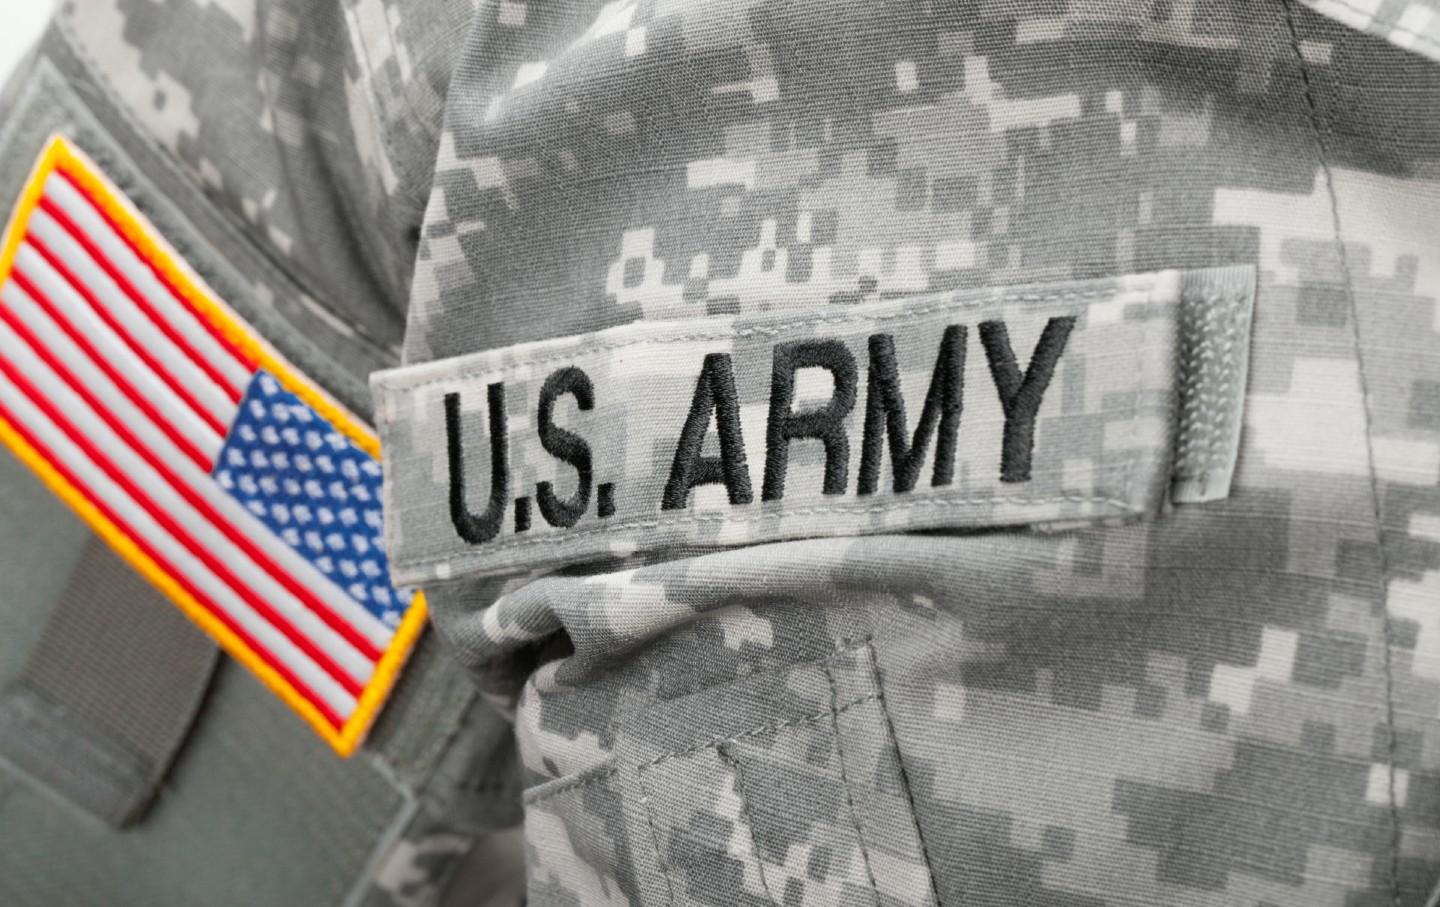 US Army and flag patch on solder's uniform